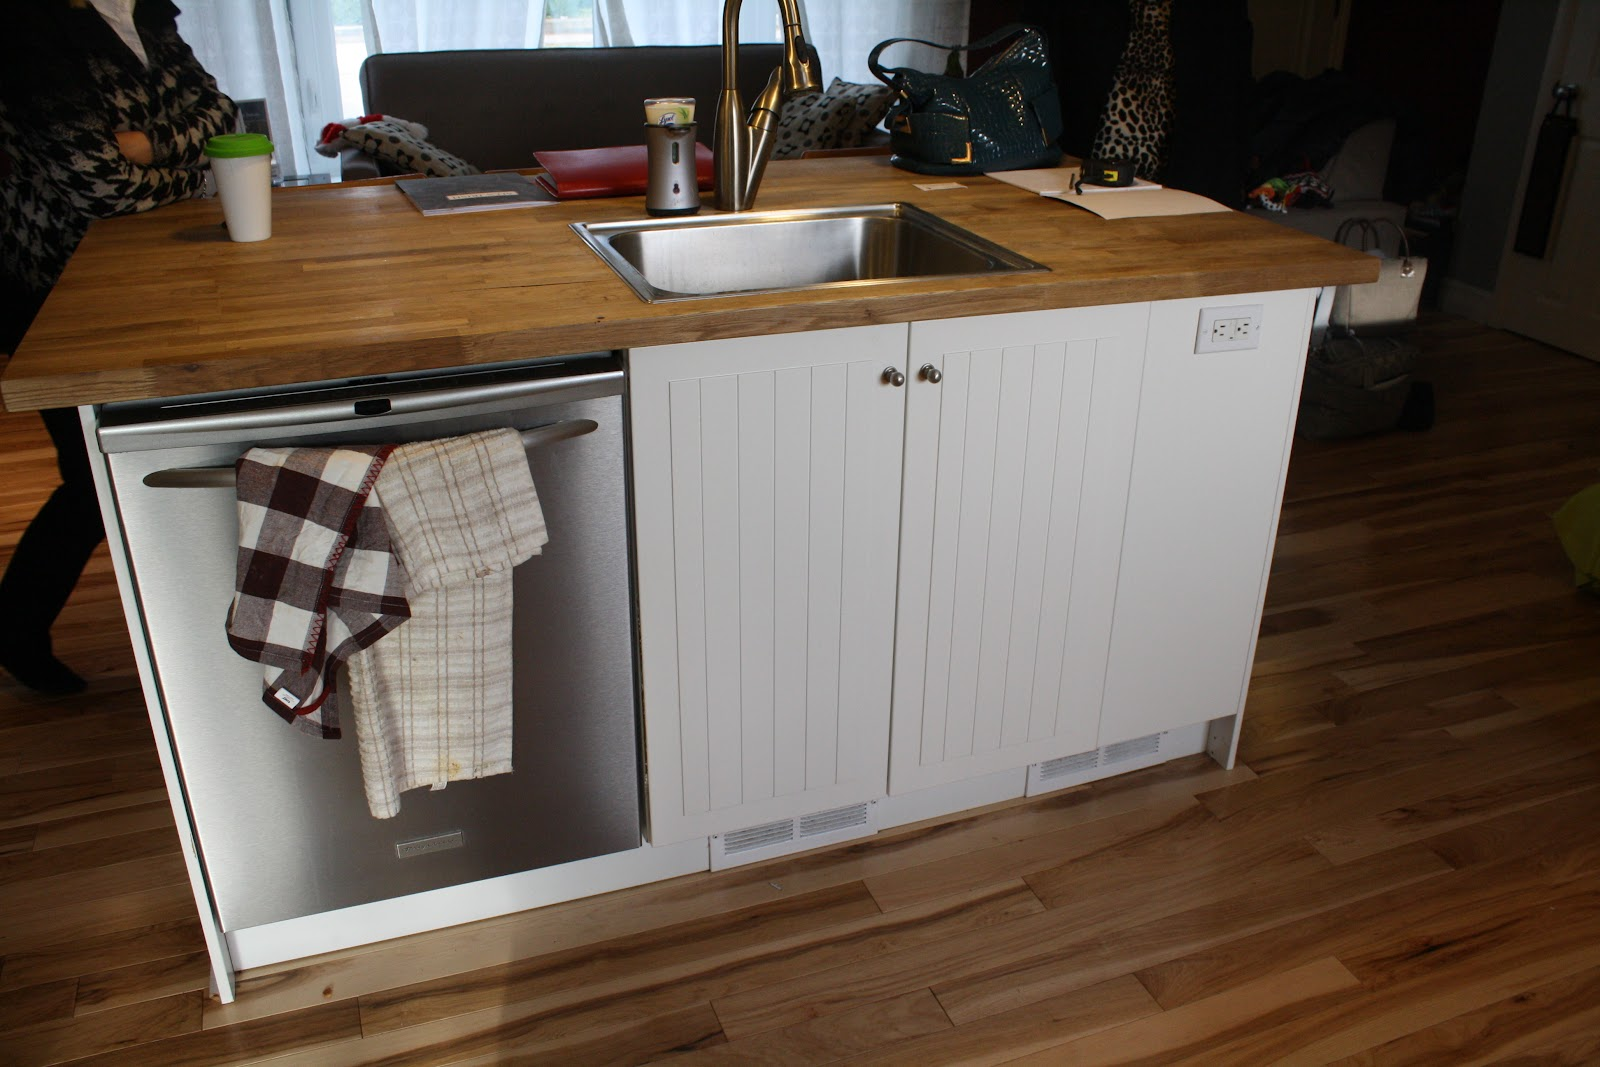 Pictures Of Kitchen Islands With Sinks And Dishwashers